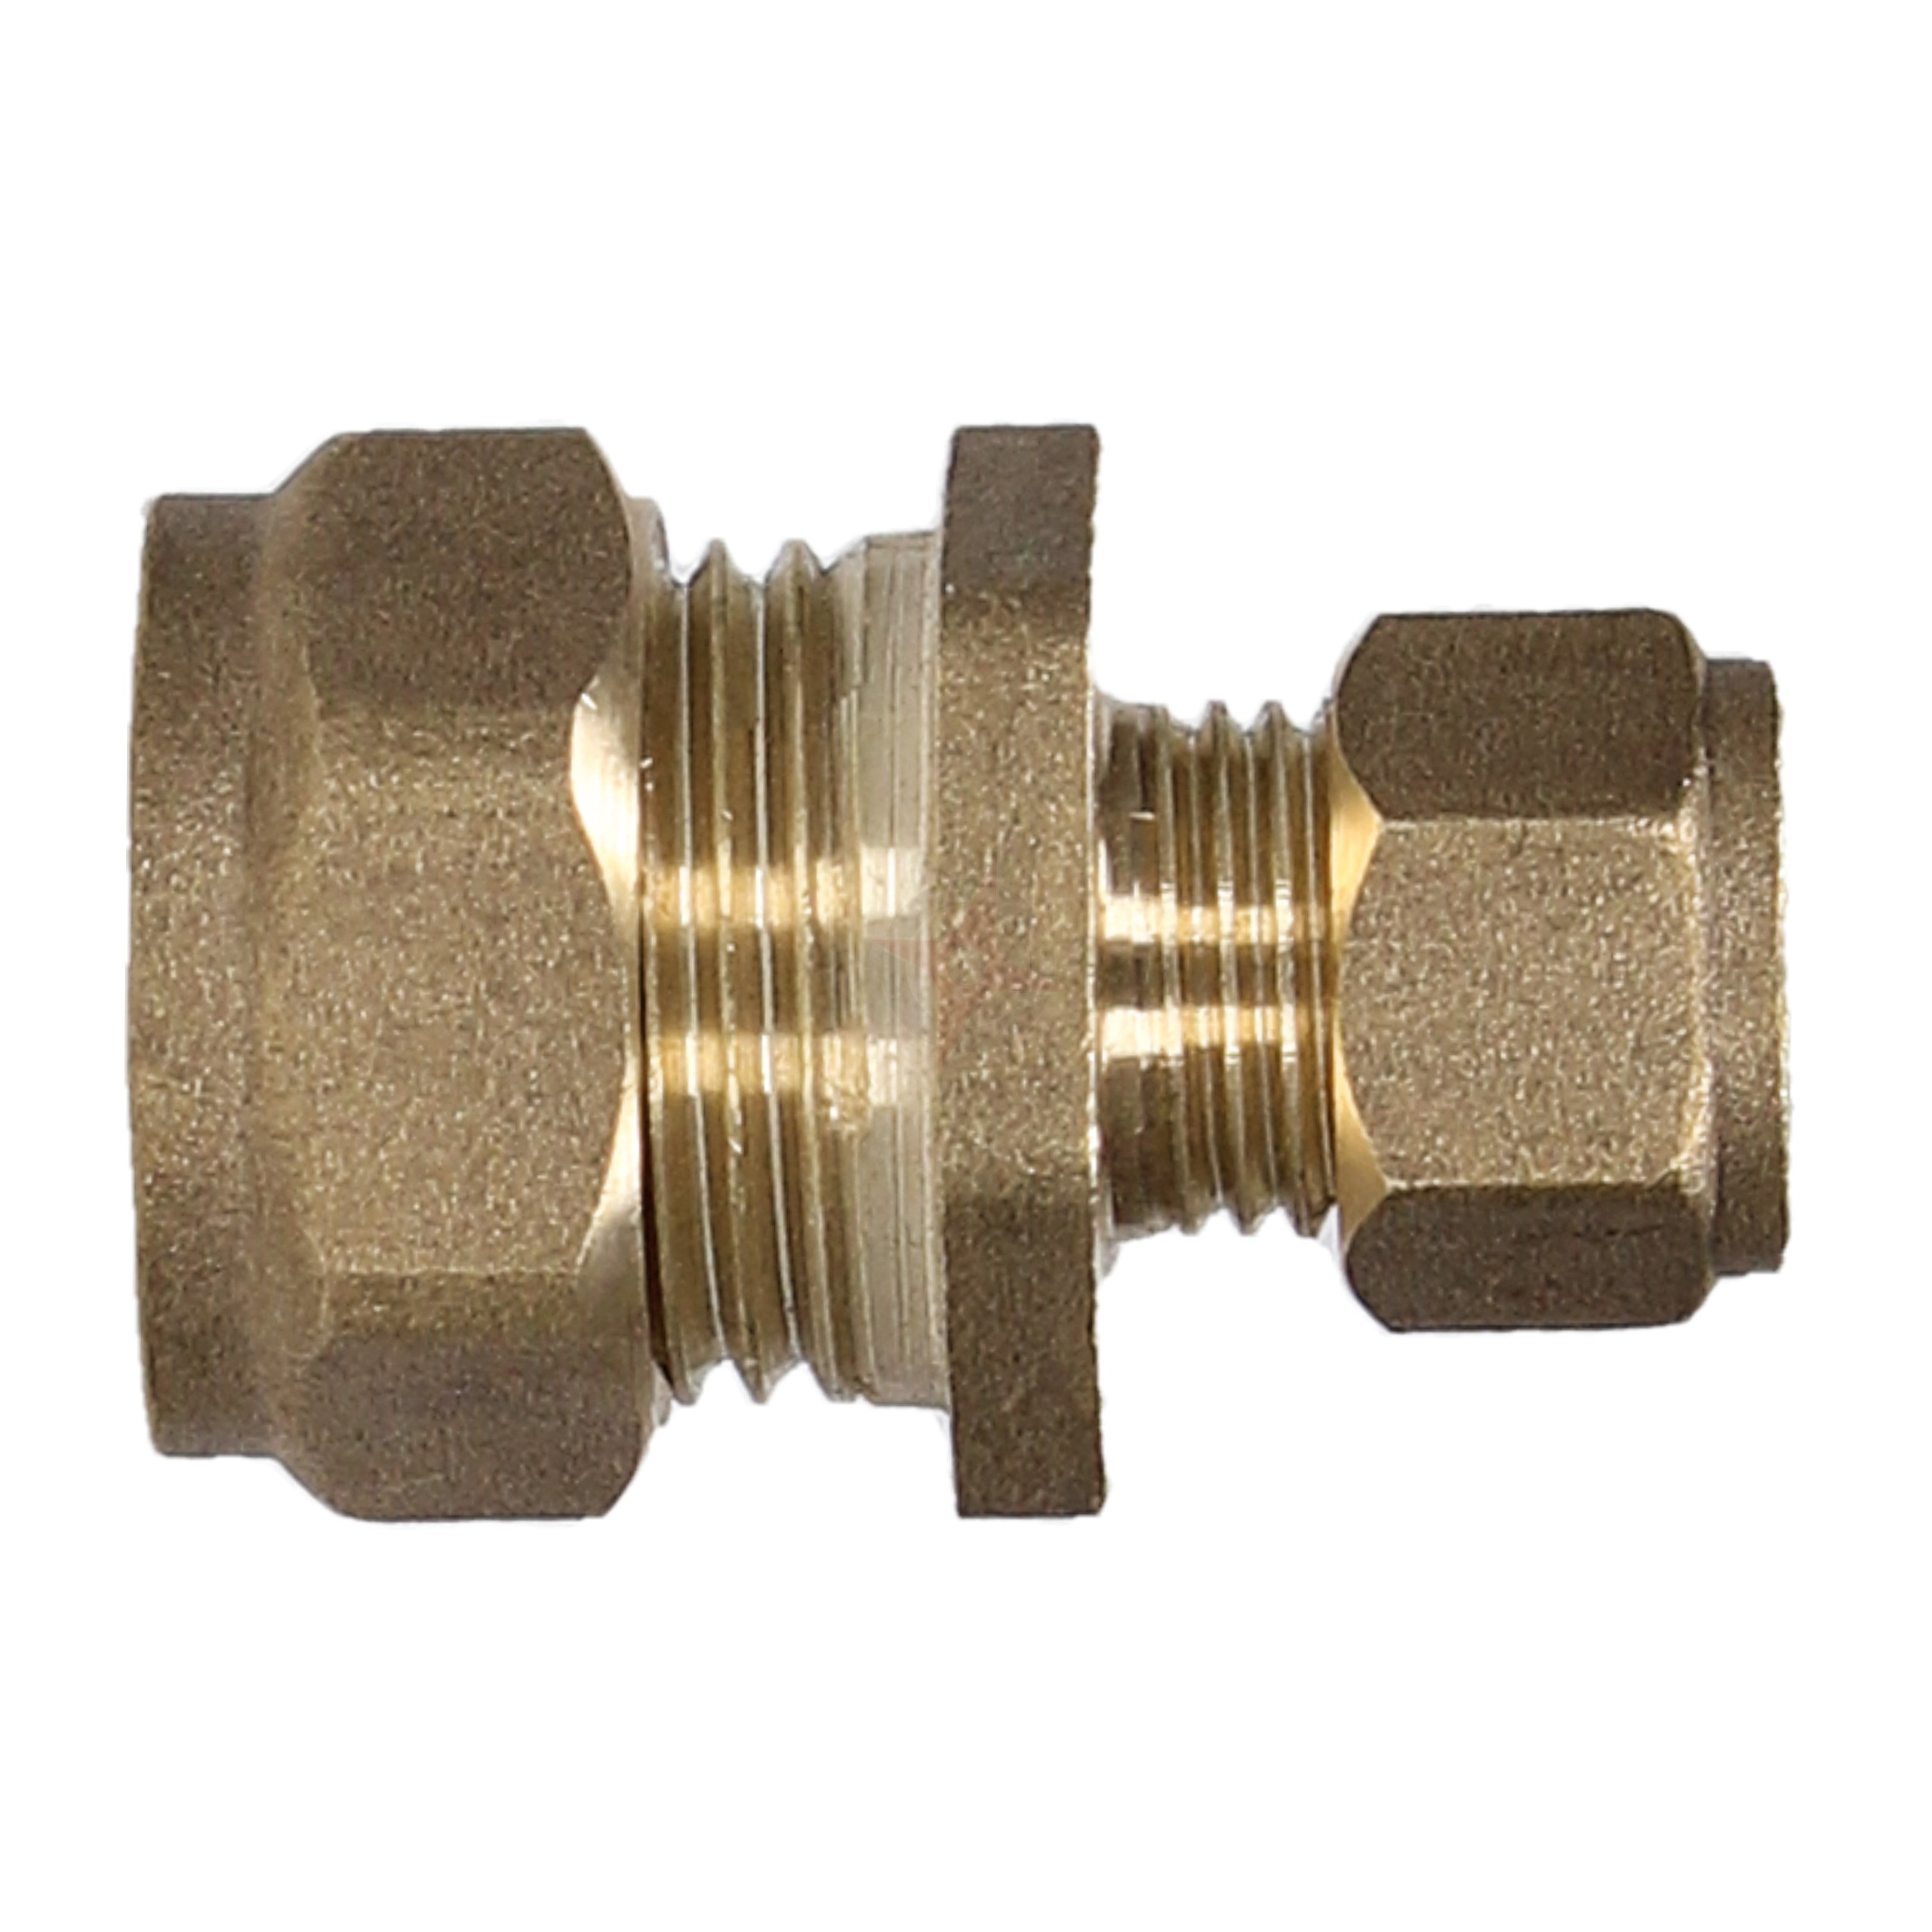 Compression 15mm x 10mm Reducing Coupler